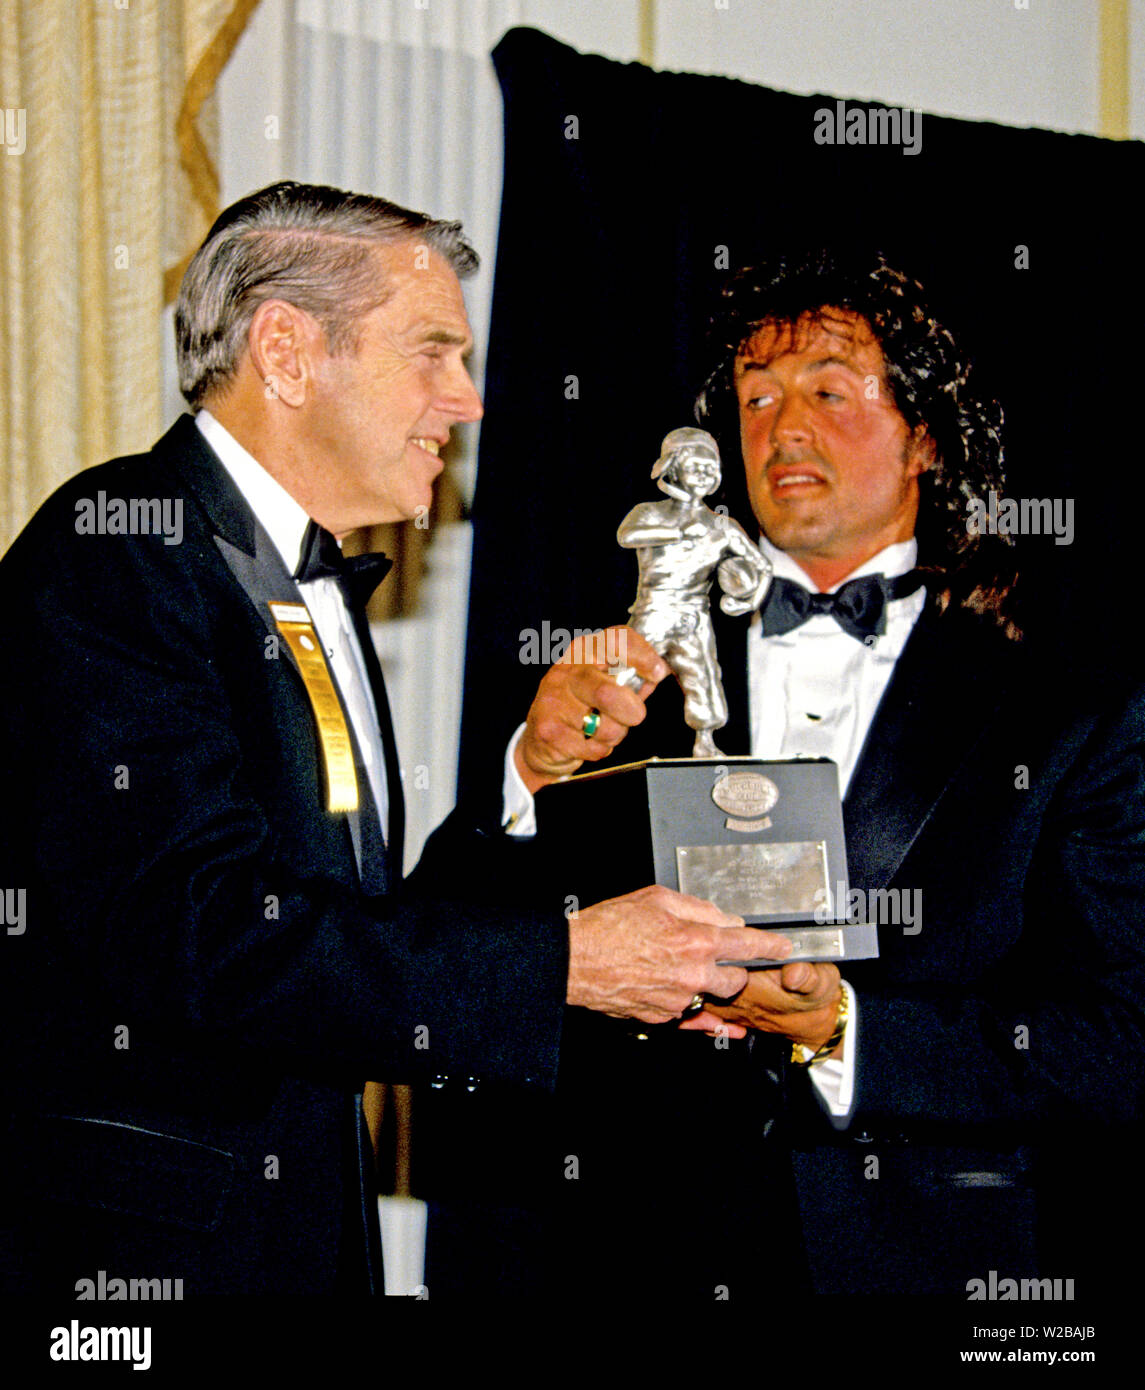 American actor, director, screenwriter, and producer Sylvester Stallone, right, accepts the President's Council on Physical Fitness award from former Washington Redskins head coach George Allen, left, at the Washington, DC Touchdown Club dinner in Washington, DC on January 23, 1988. Credit: Arnie Sachs/CNP | usage worldwide - Stock Image